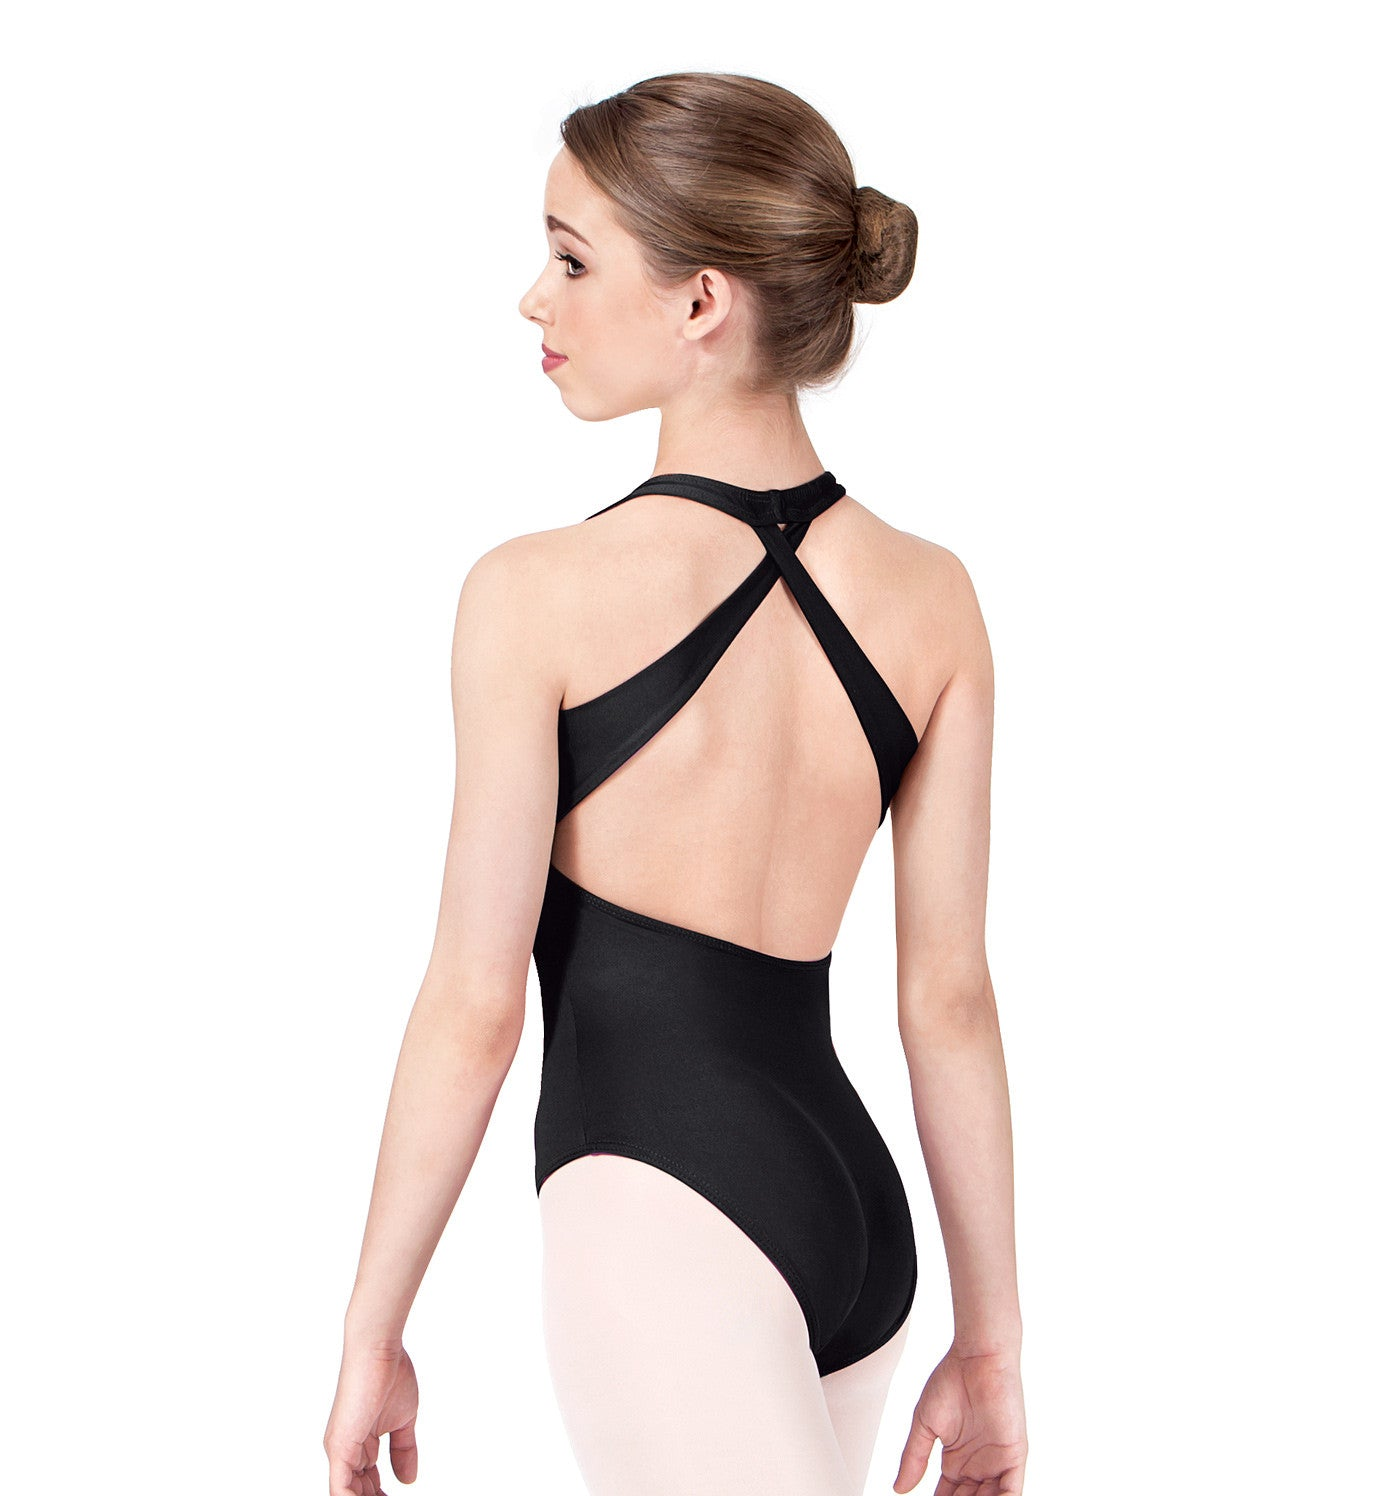 Adult Cross Back Halter Leotard for Women